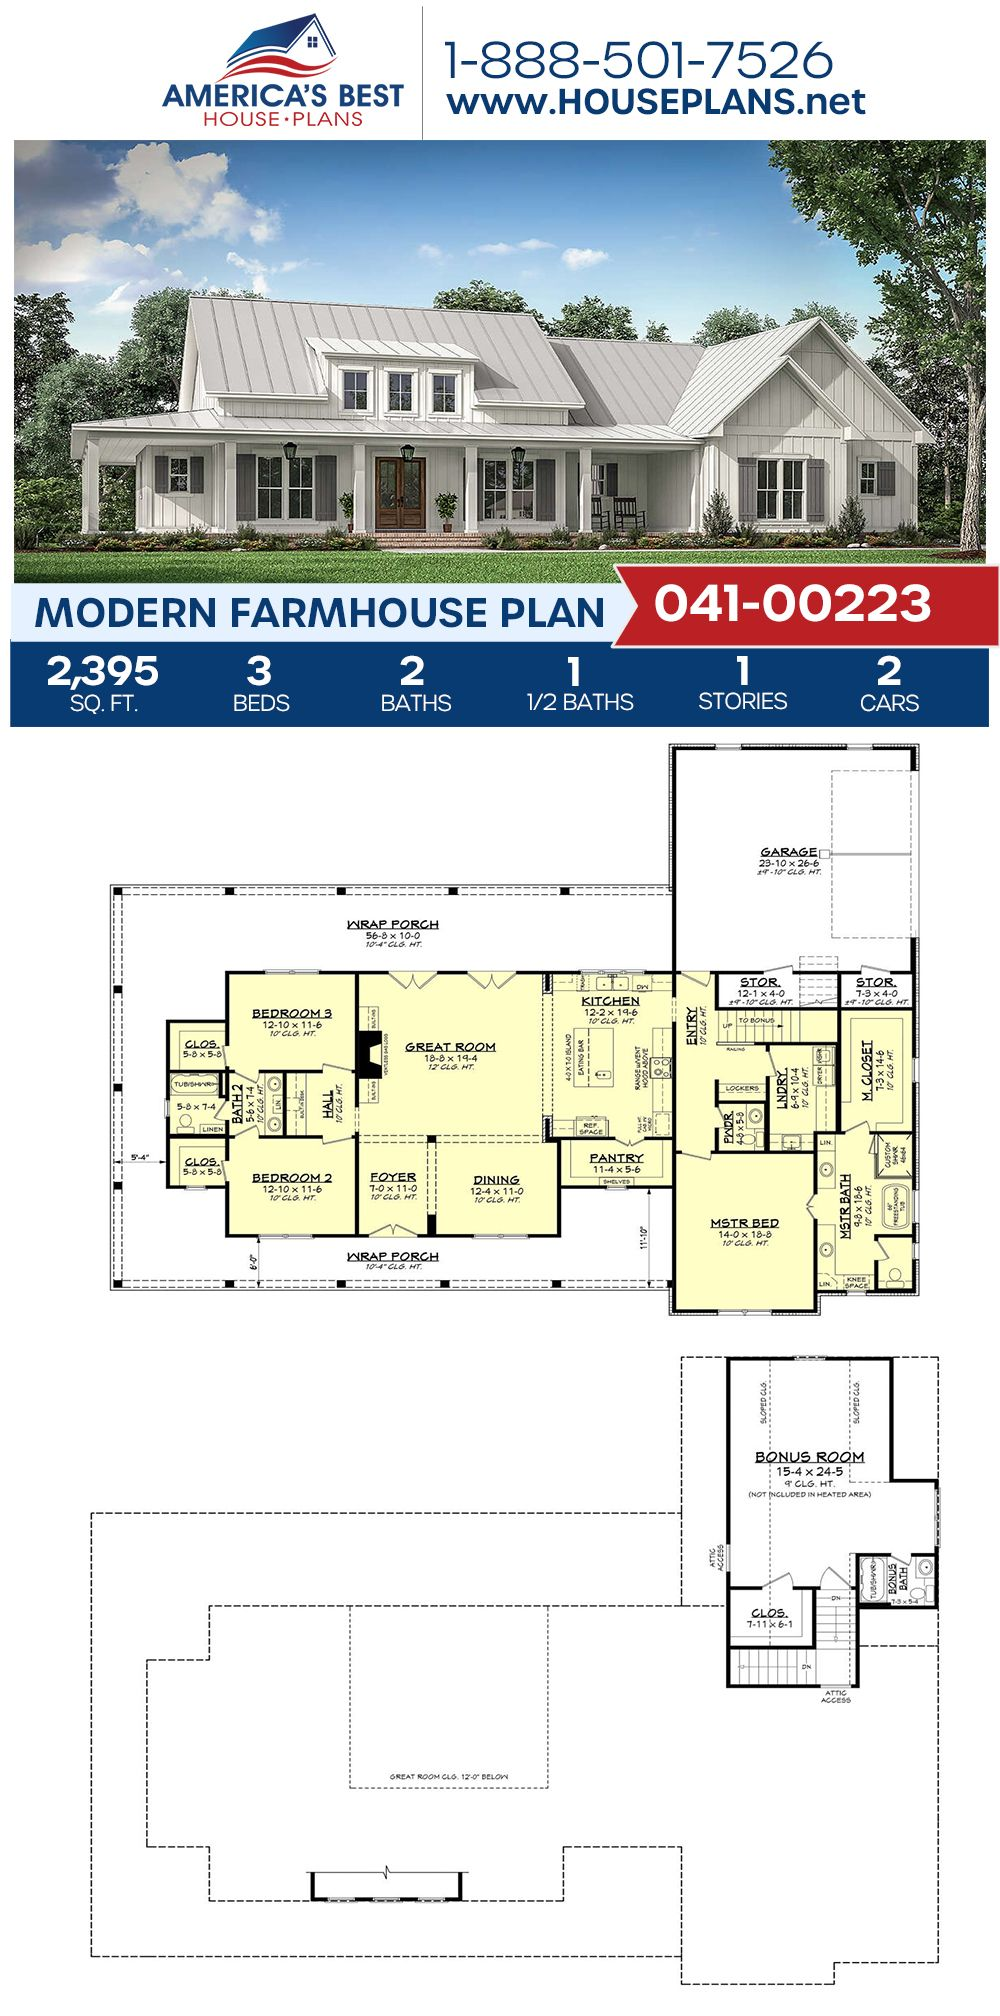 House Plan 041 00223 Modern Farmhouse Plan 2 395 Square Feet 3 Bedrooms 2 5 Bathrooms In 2020 Modern Farmhouse Plans Porch House Plans Farmhouse Plans